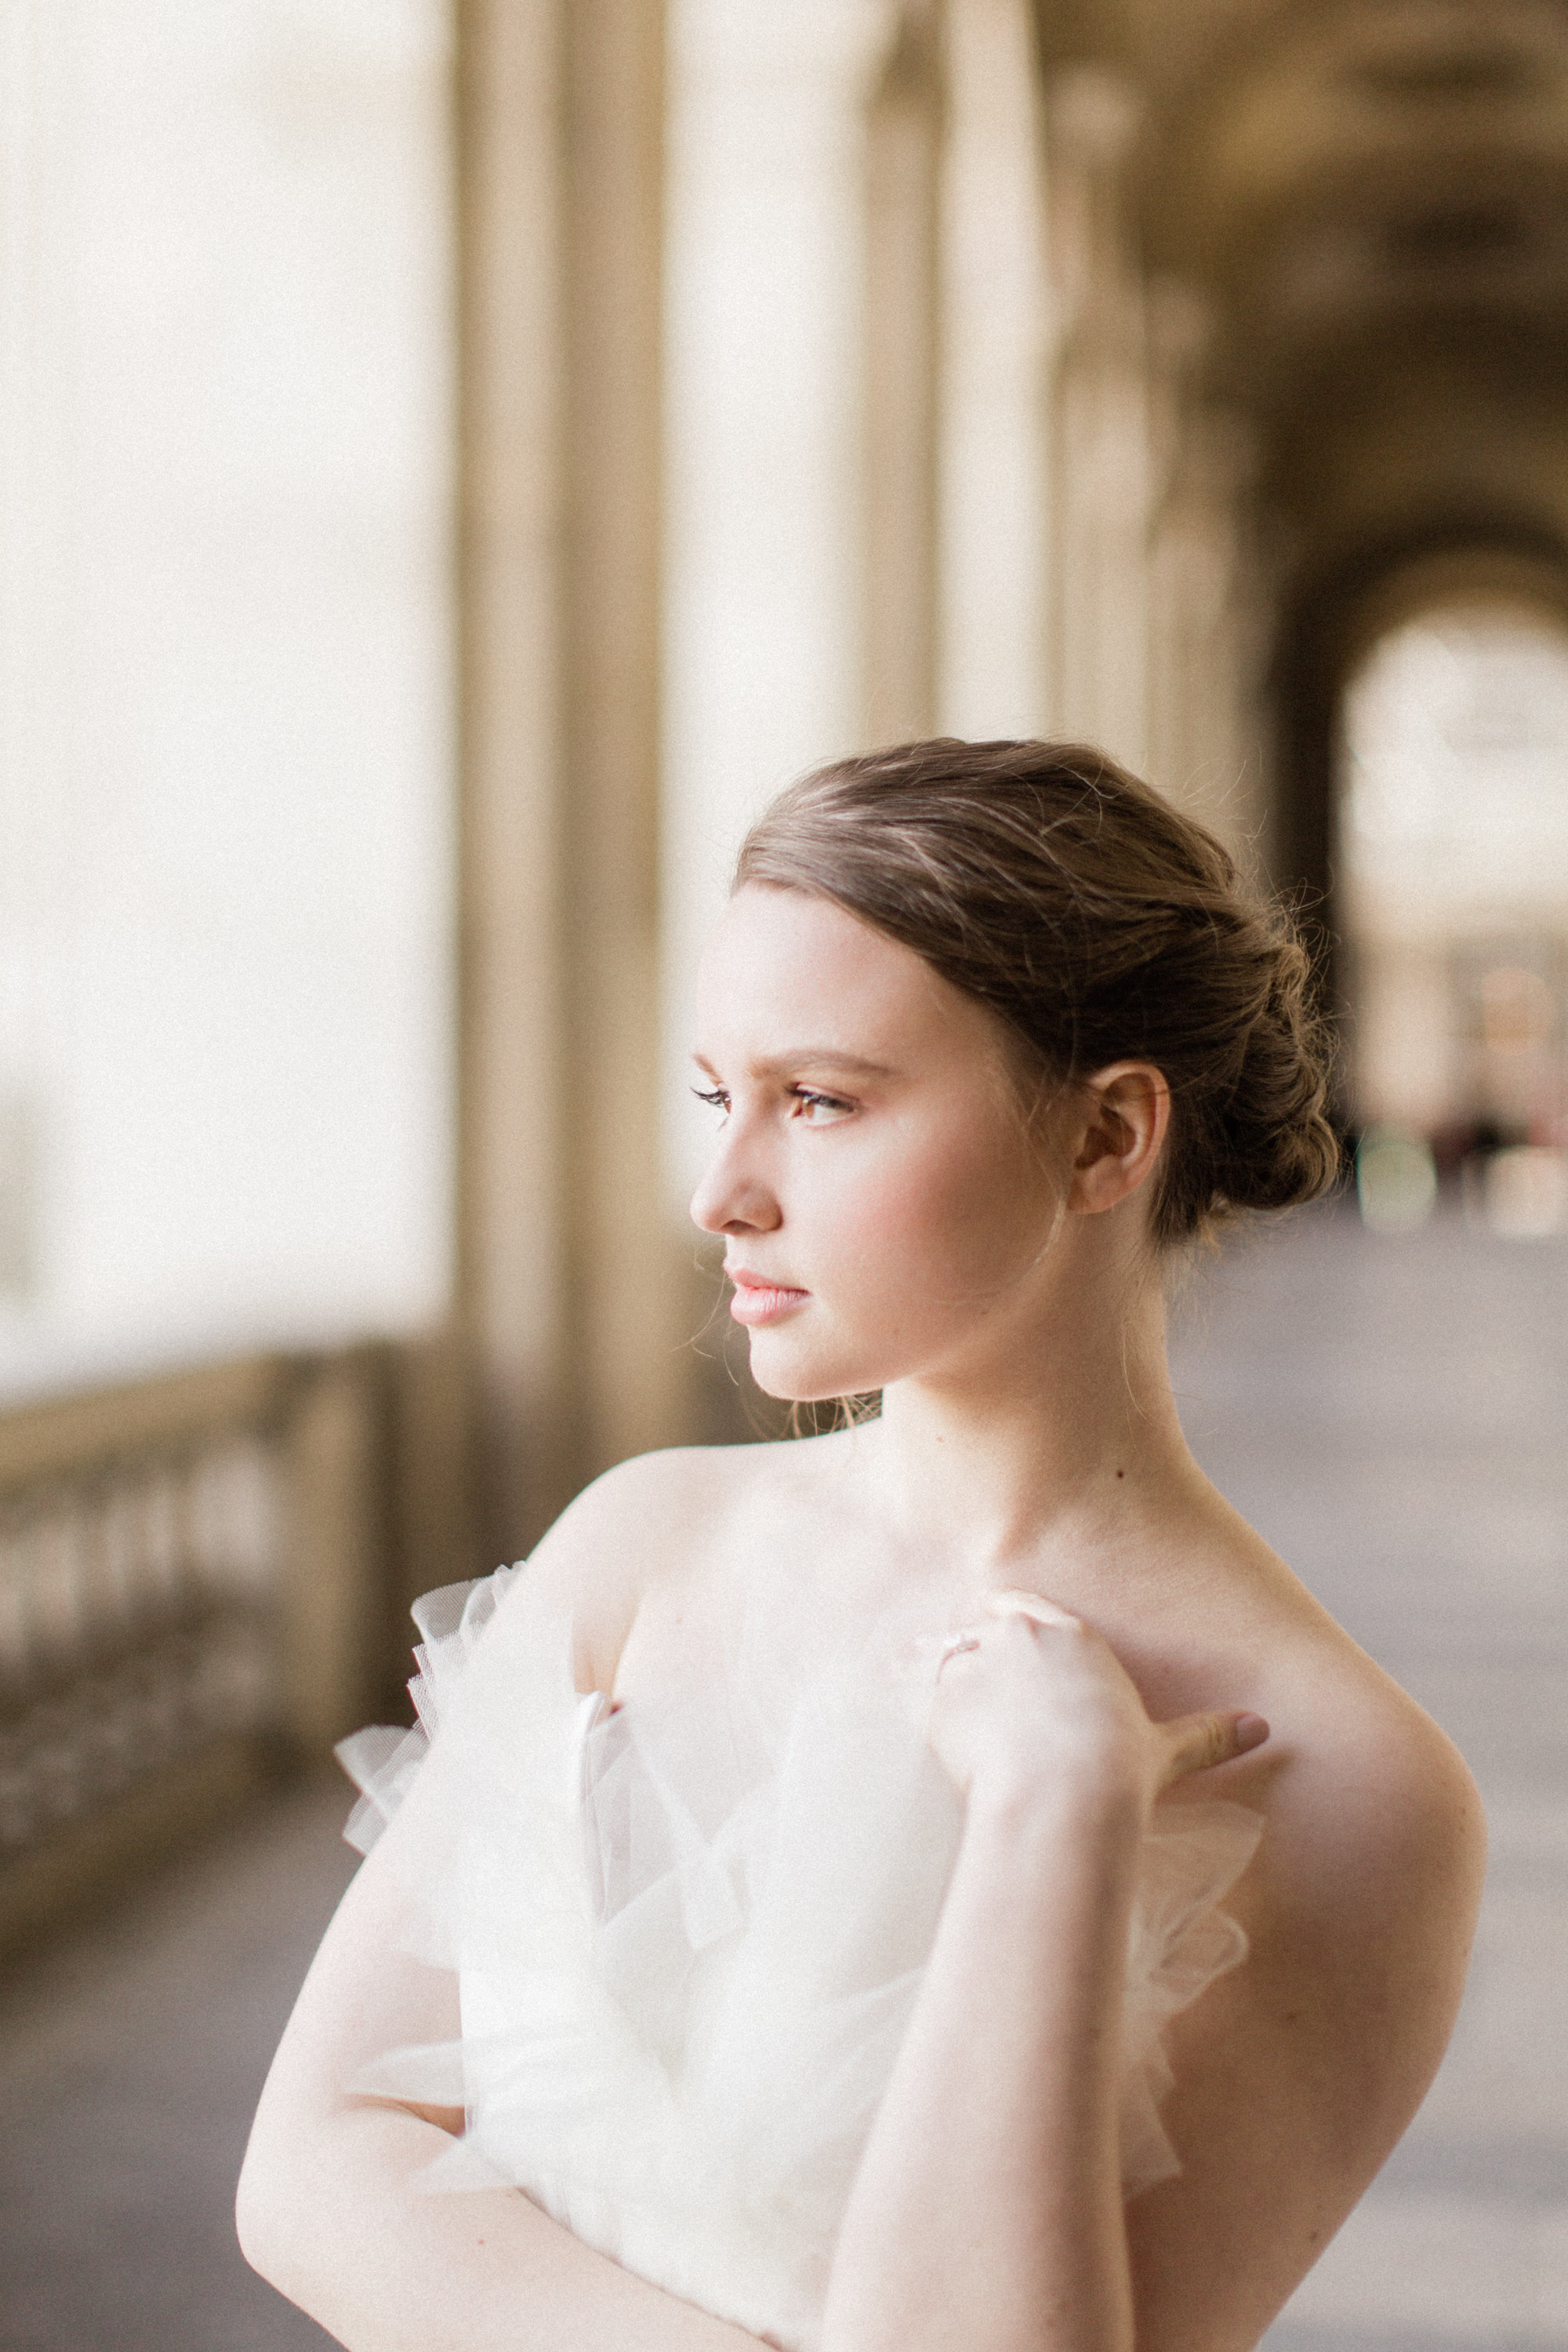 Grand palais wedding gown blush and tulle28.jpg